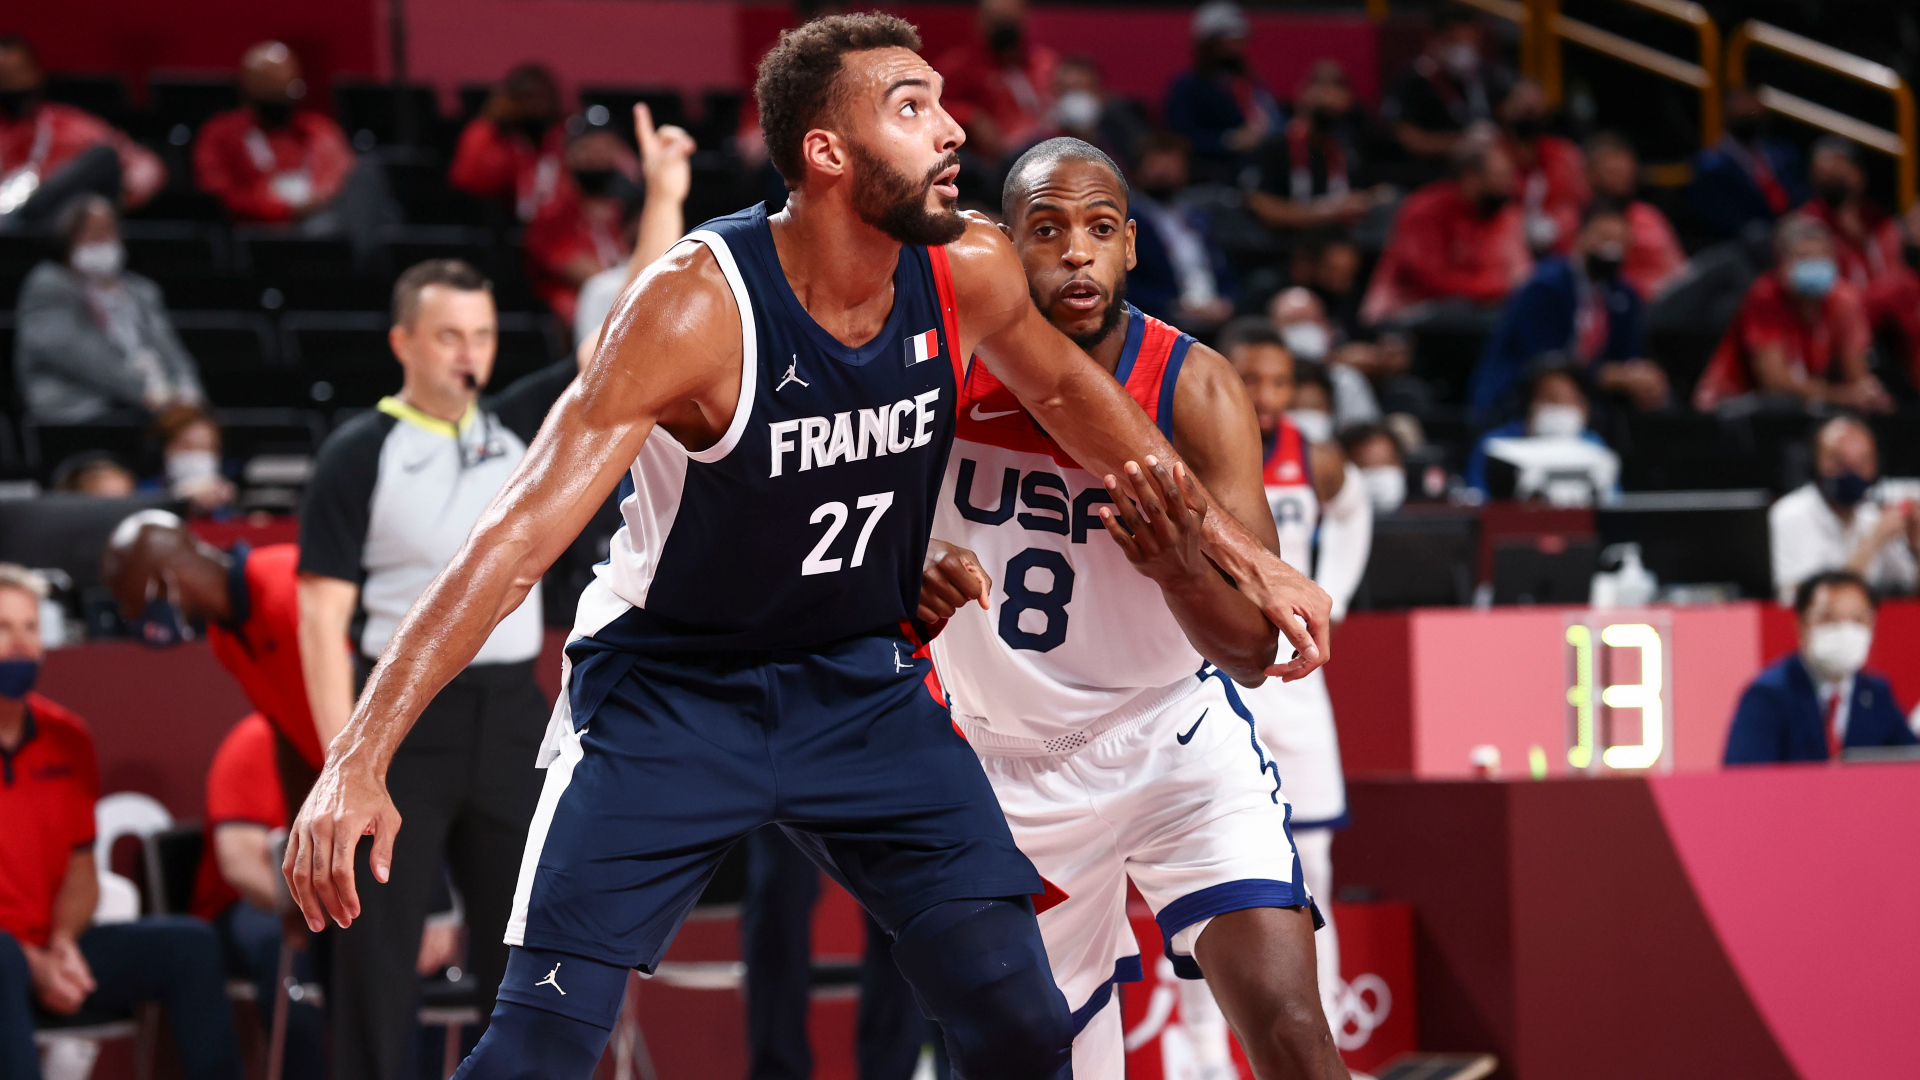 1628310302 531 United States vs France Live Statistics Commentary and How to